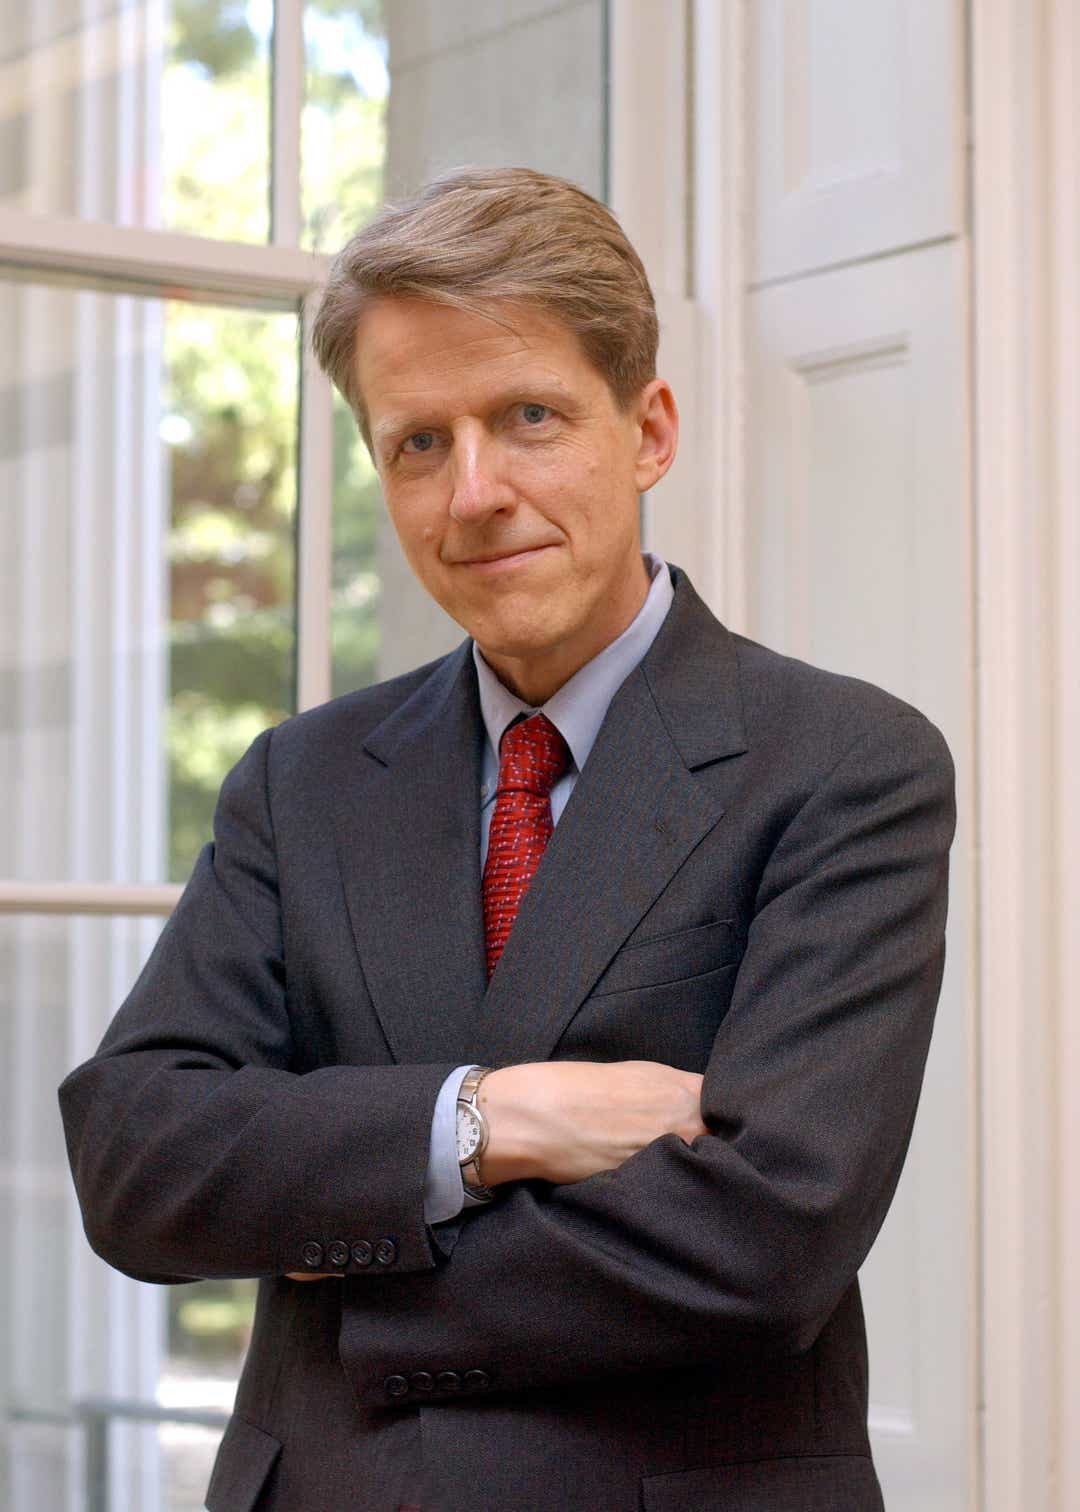 Robert Shiller puts odds of downturn at less than 50%